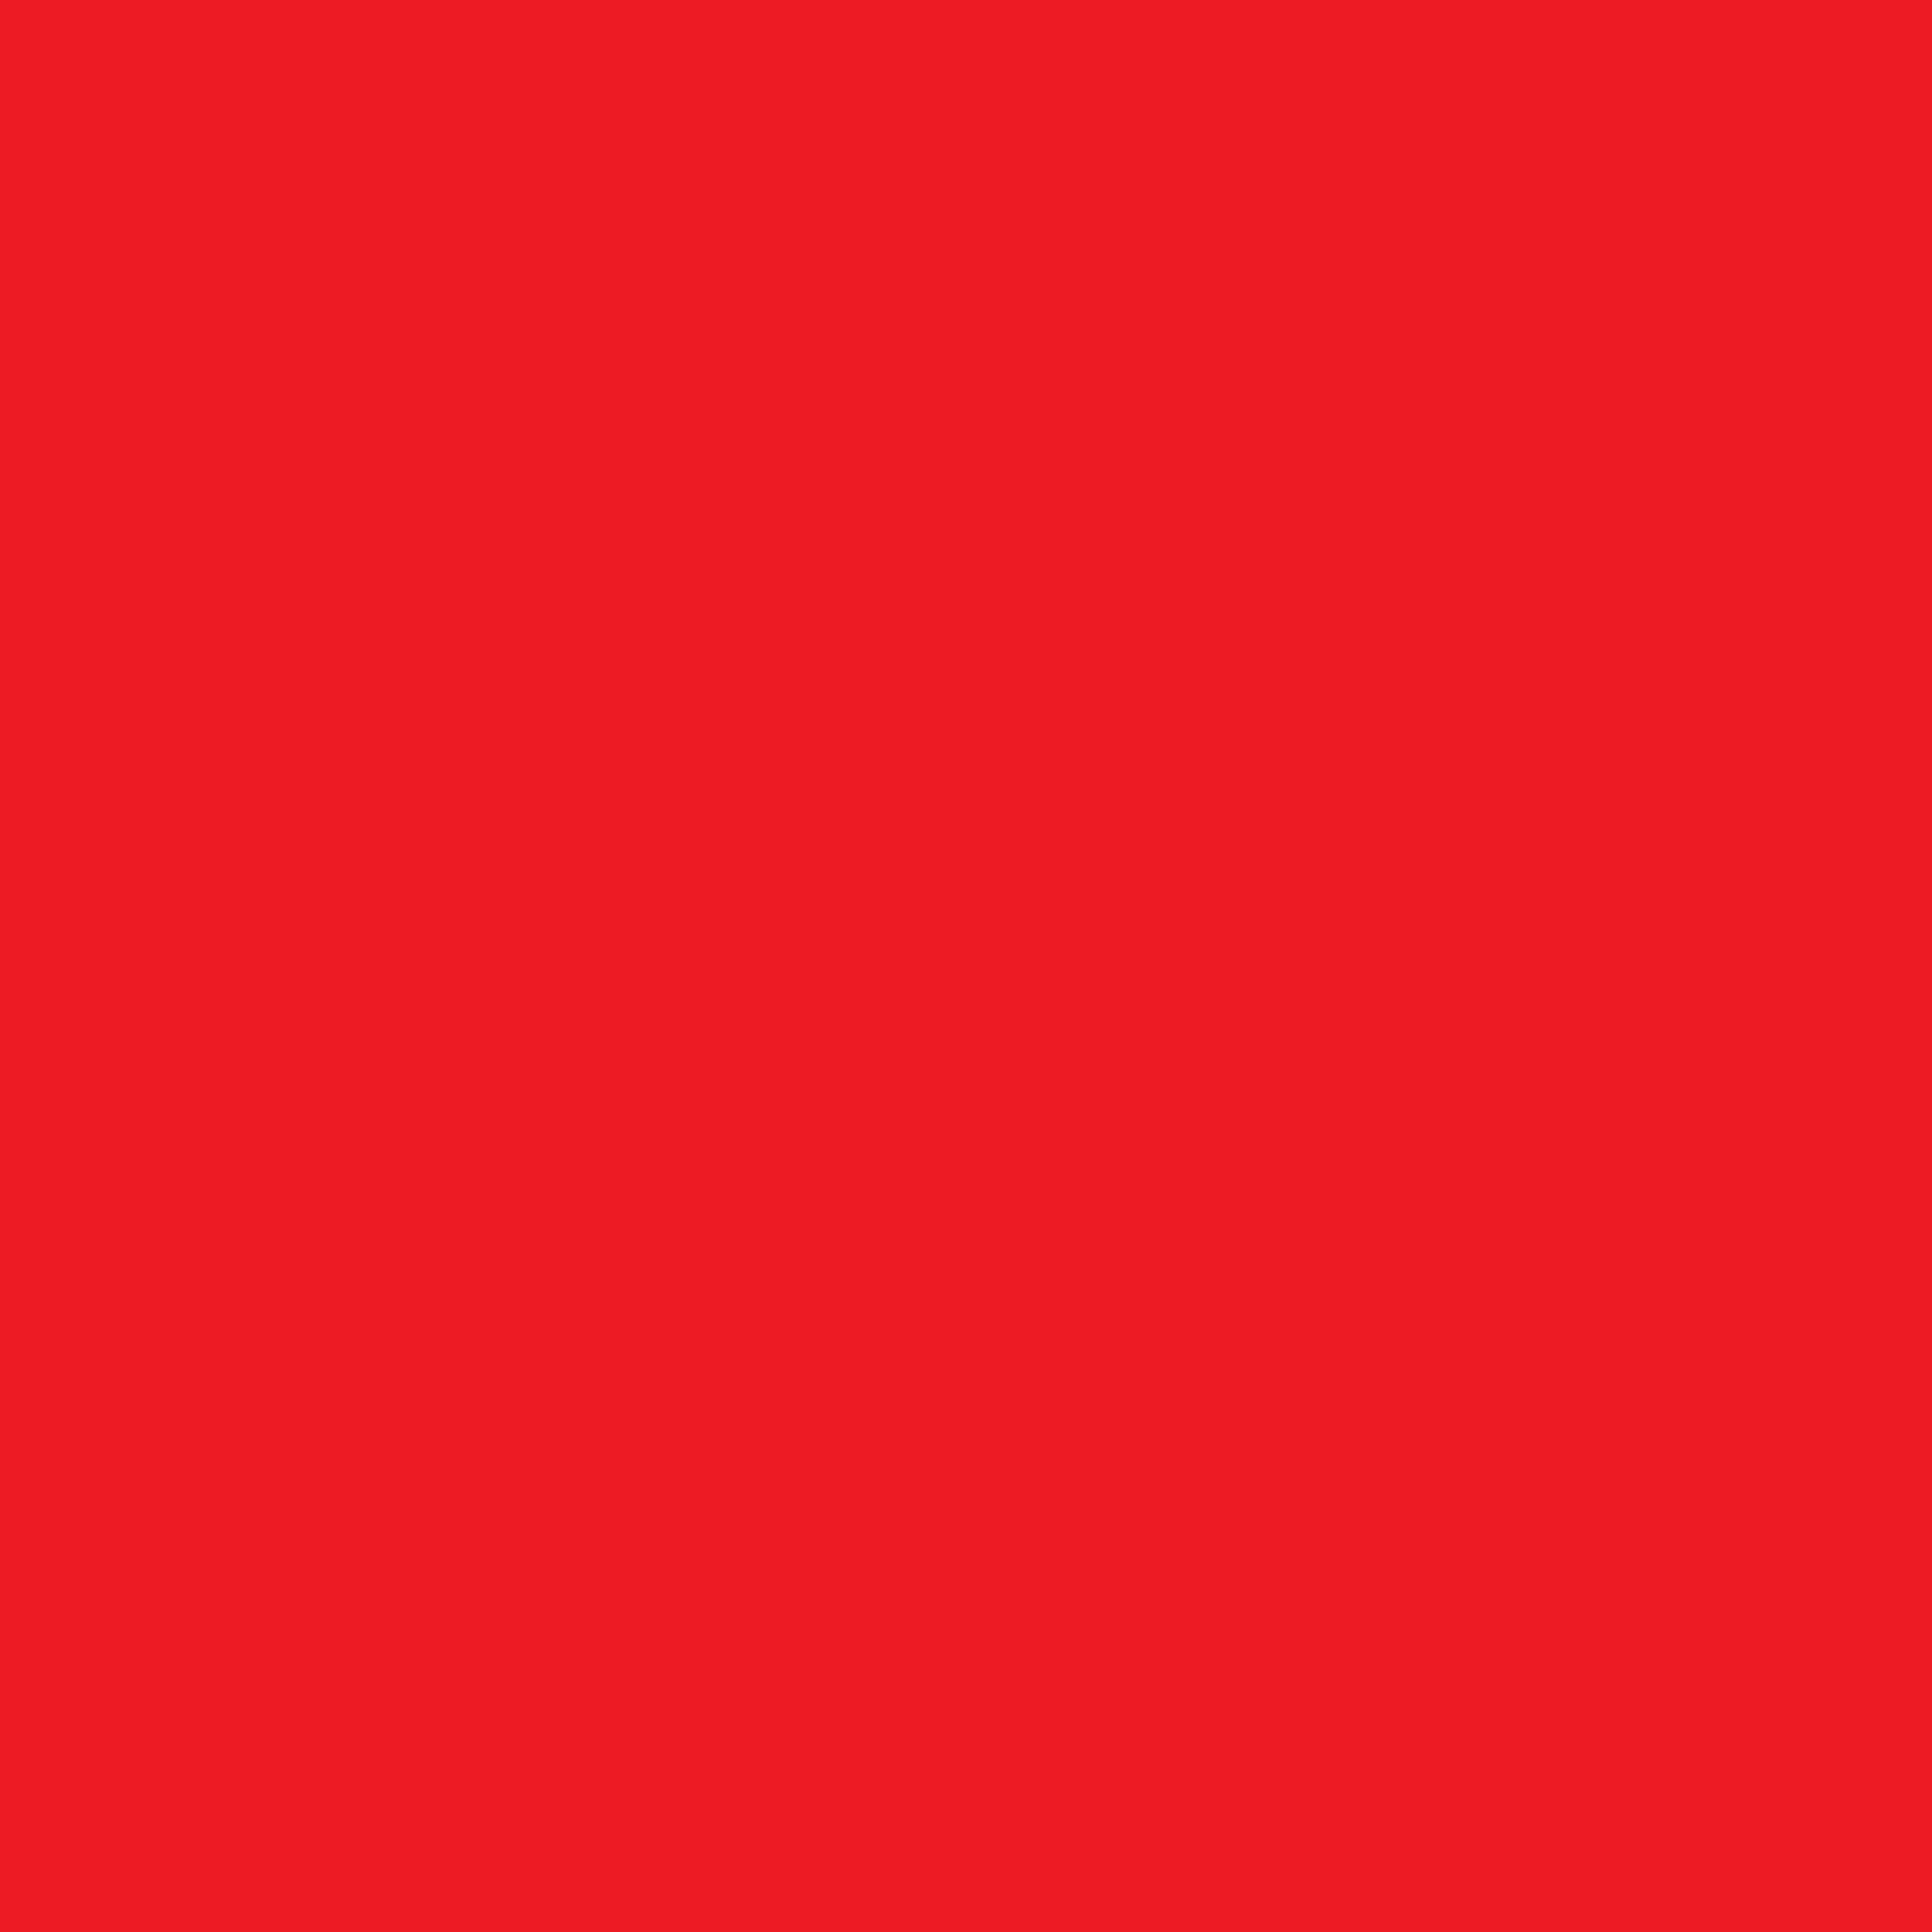 2048x2048 Red Pigment Solid Color Background